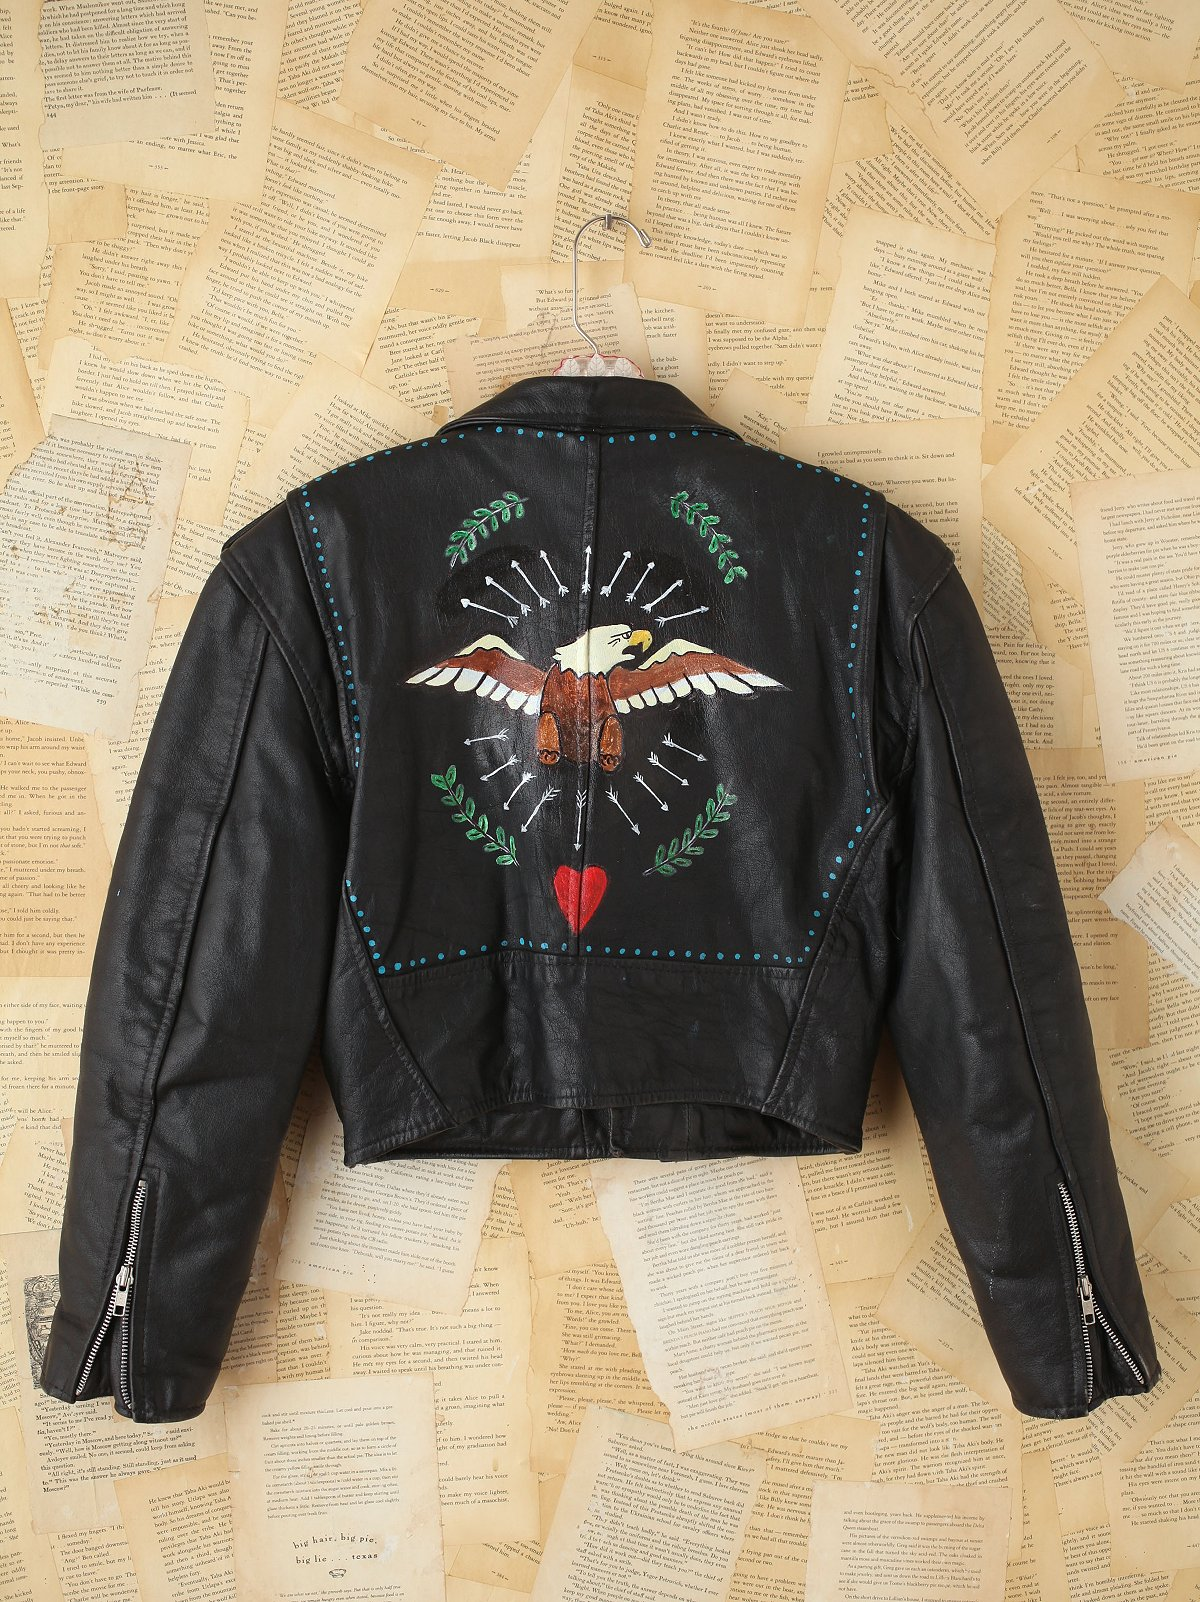 Vintage John David Mahaffey Hand-Painted Leather Jacket